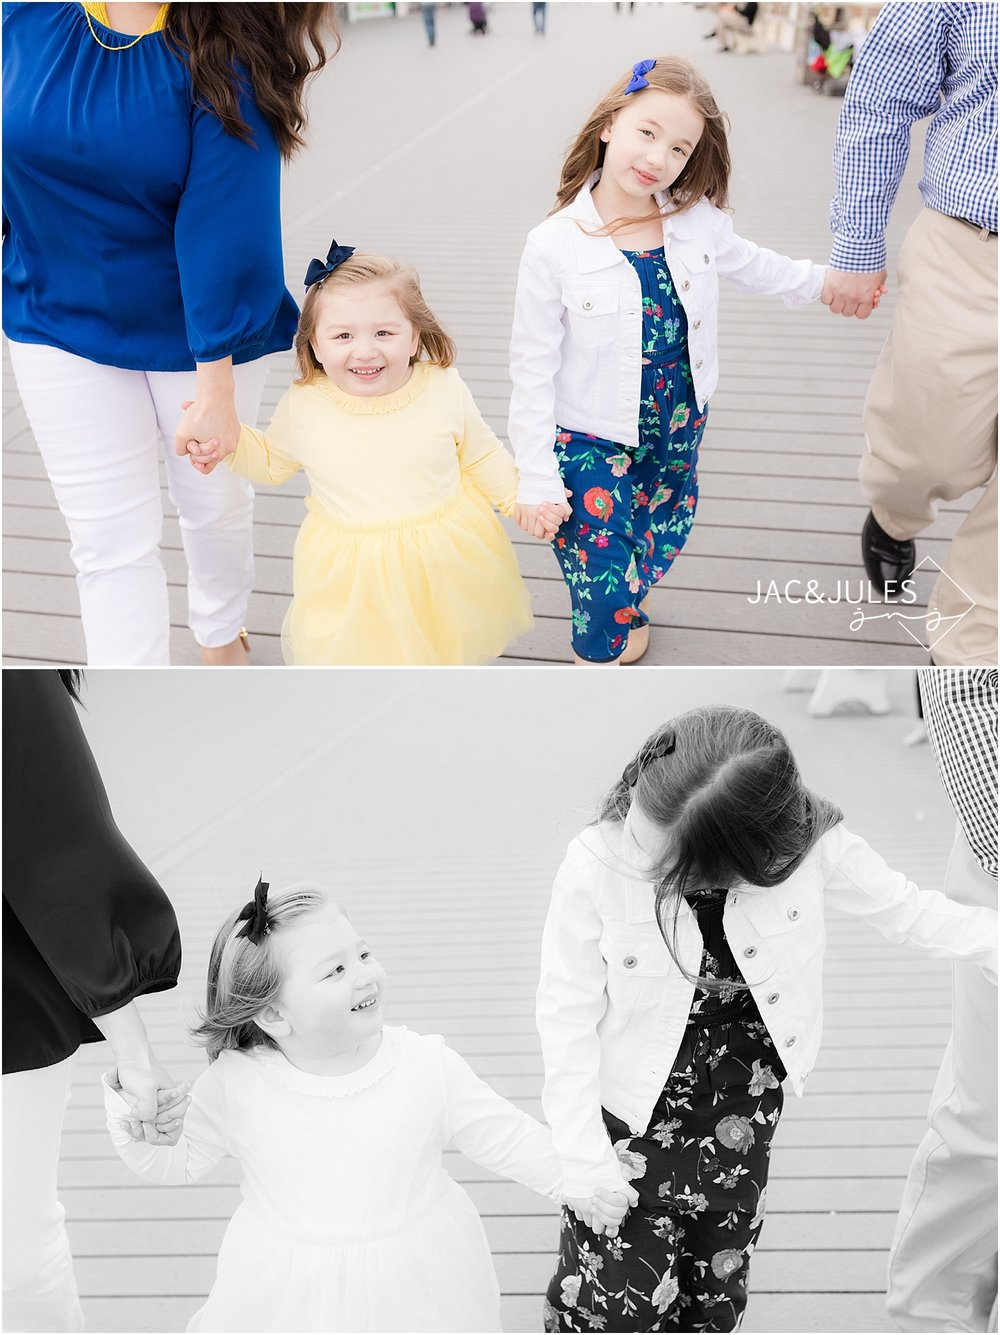 jacnjules photograph modern family photos on Point Pleasant boardwalk at the Jersey Shore